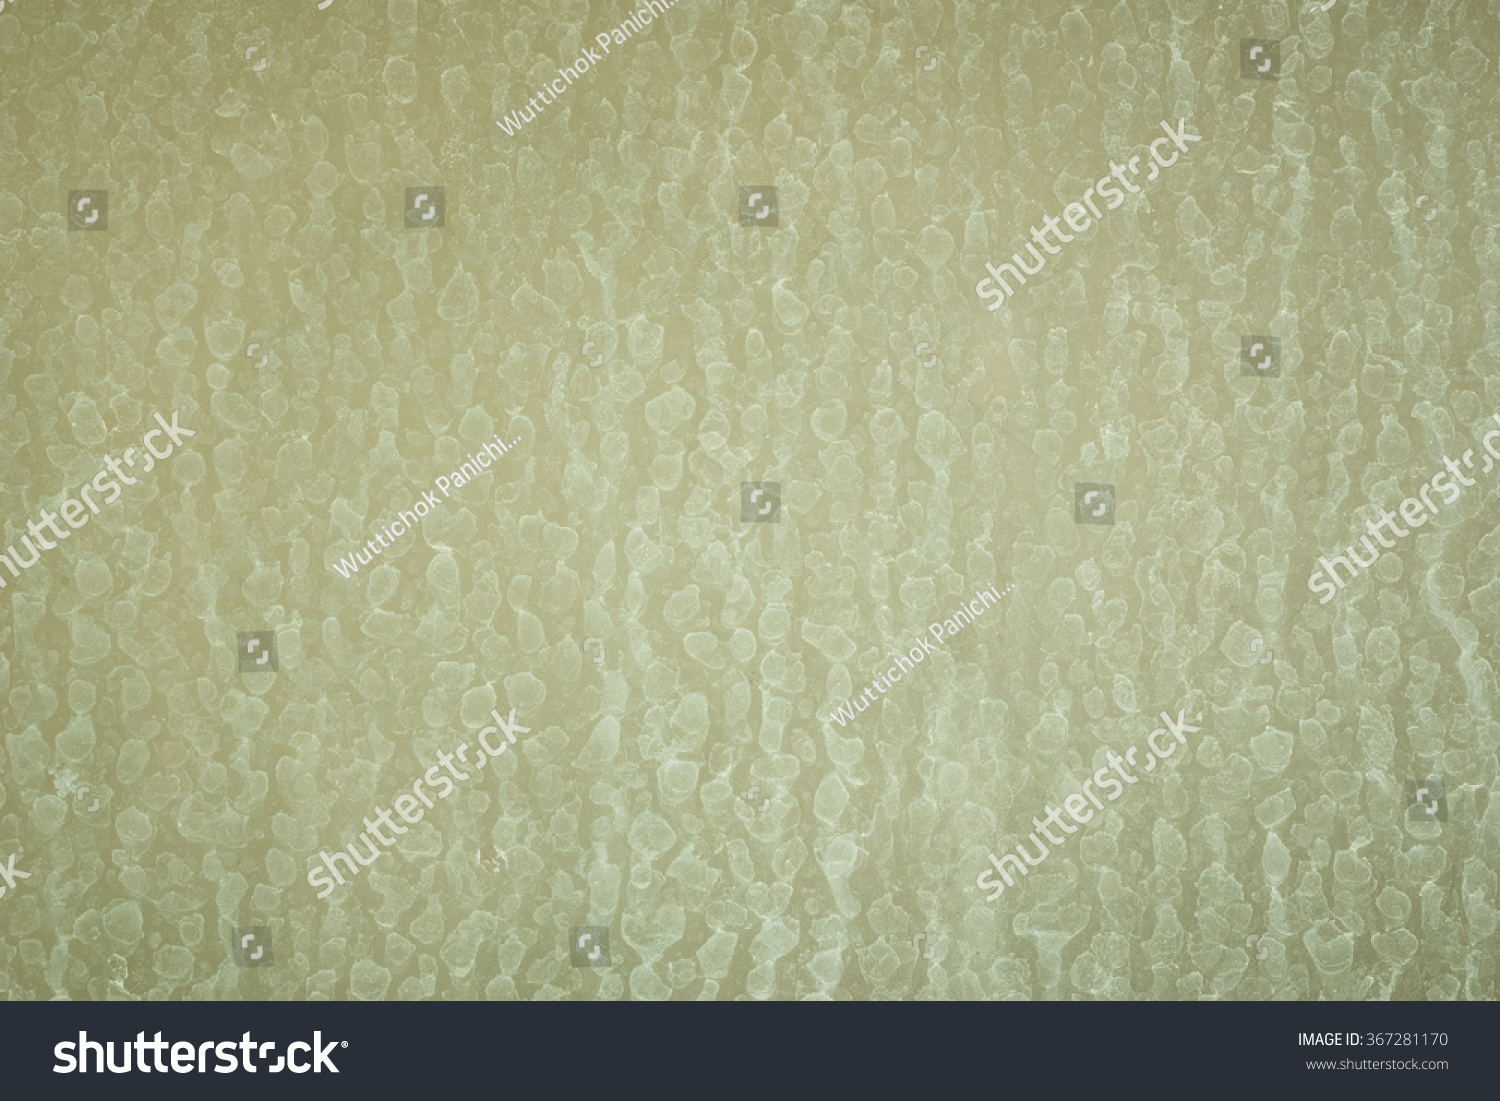 Water stains on walls in bathroom - Water Stains On Walls In Bathroom Save To A Lightbox